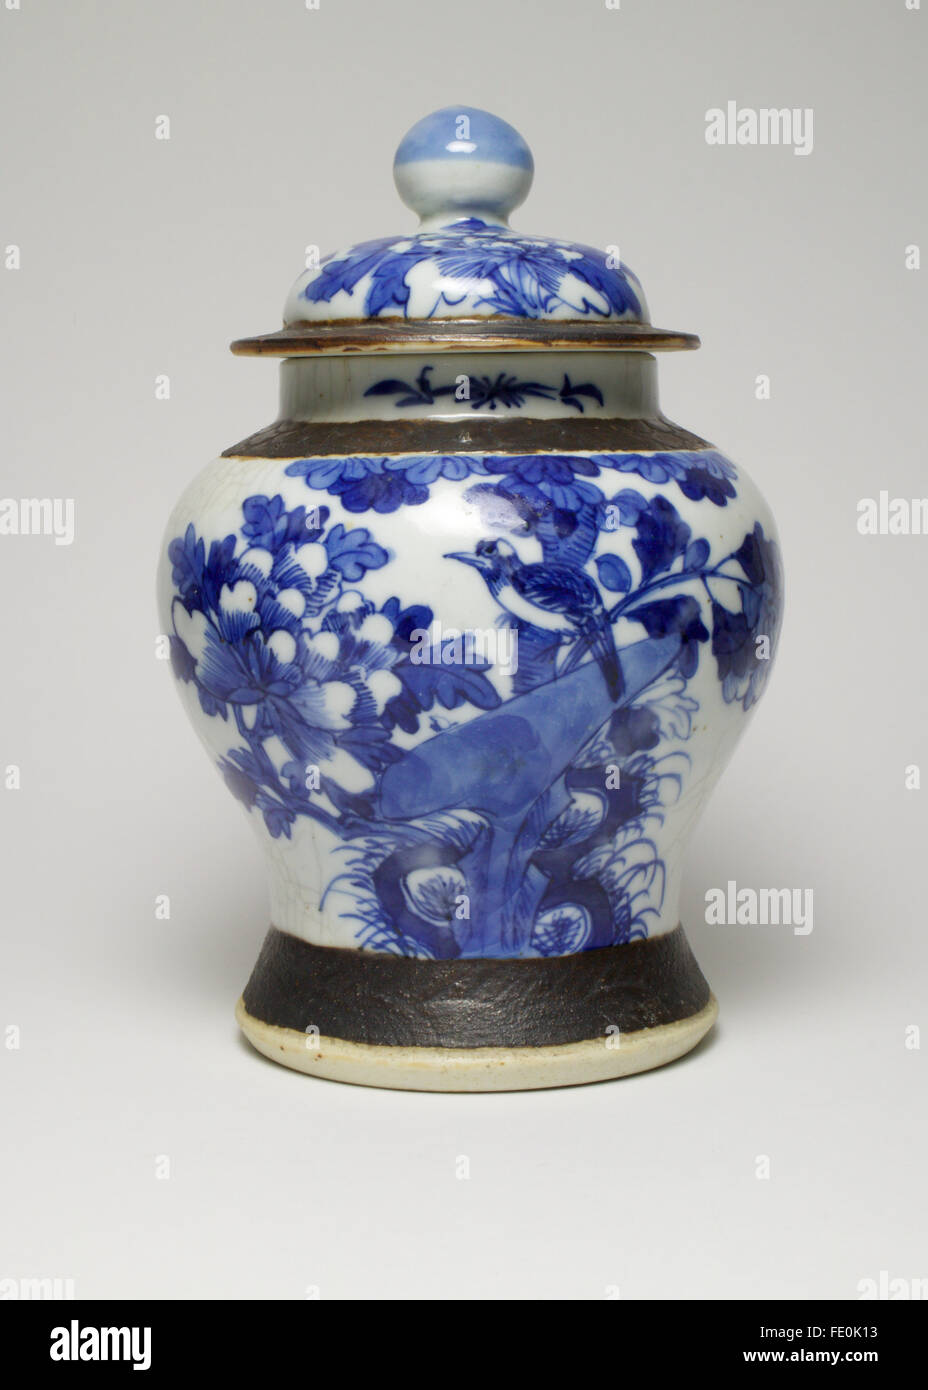 Vintage chinese blue and white porcelain vase and cover painted vintage chinese blue and white porcelain vase and cover painted with a bird sitting on a flowering branch all against a crackle reviewsmspy